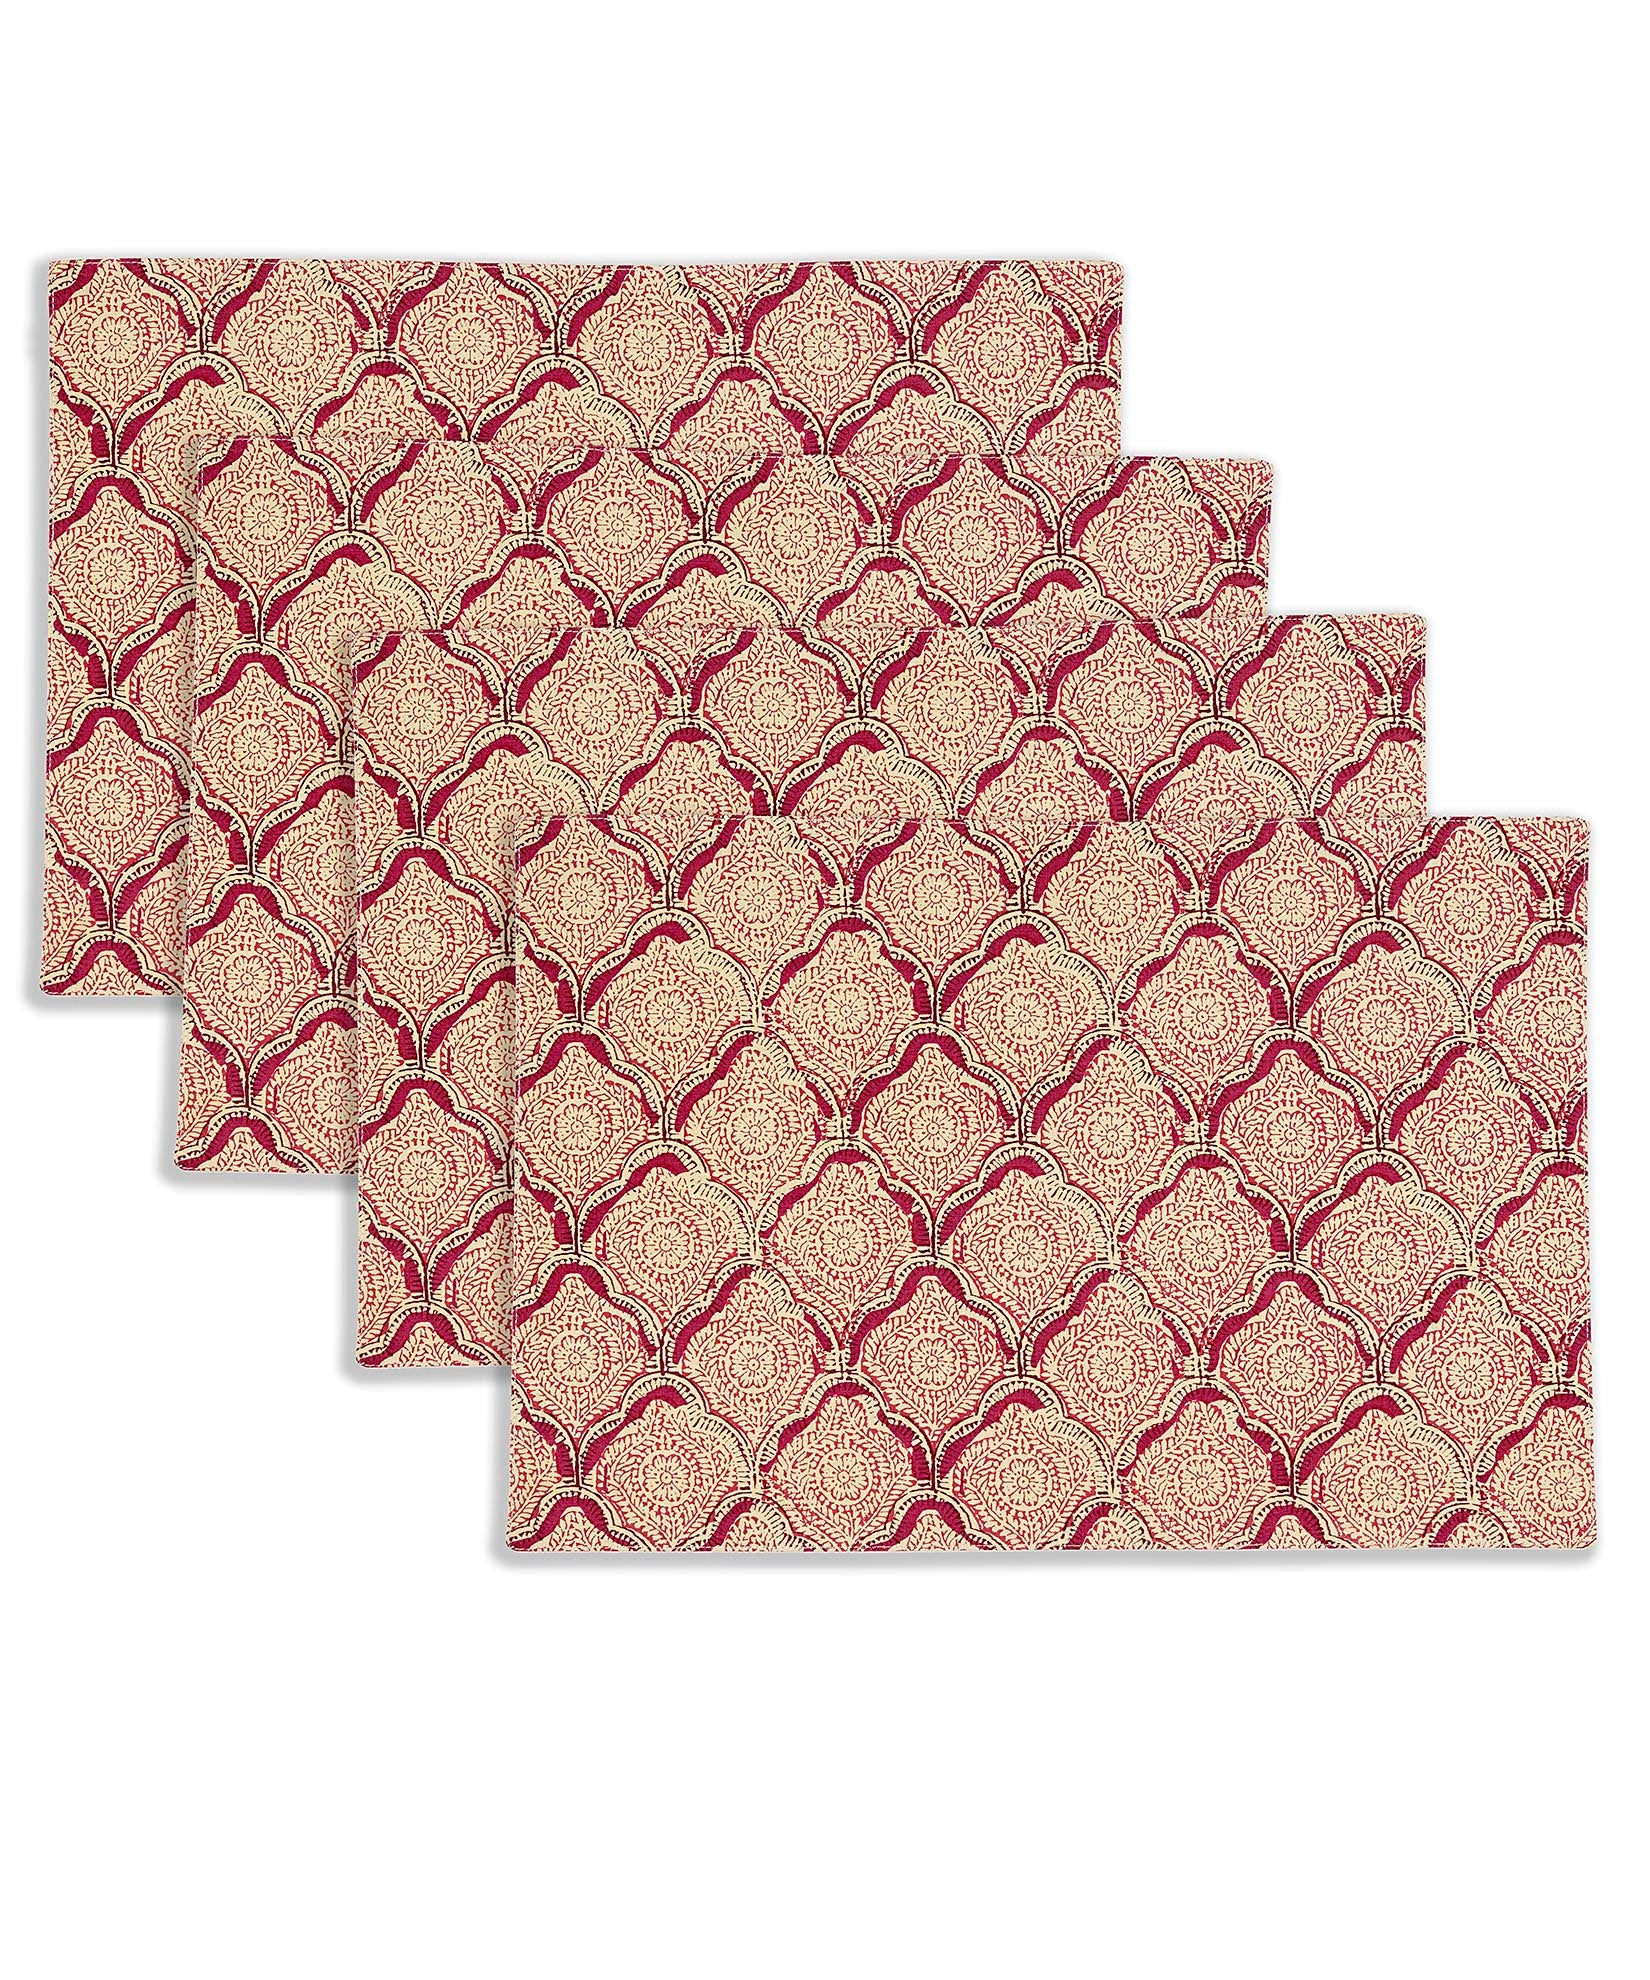 Magenta - Indian Stamp Placemat (4 Pack)